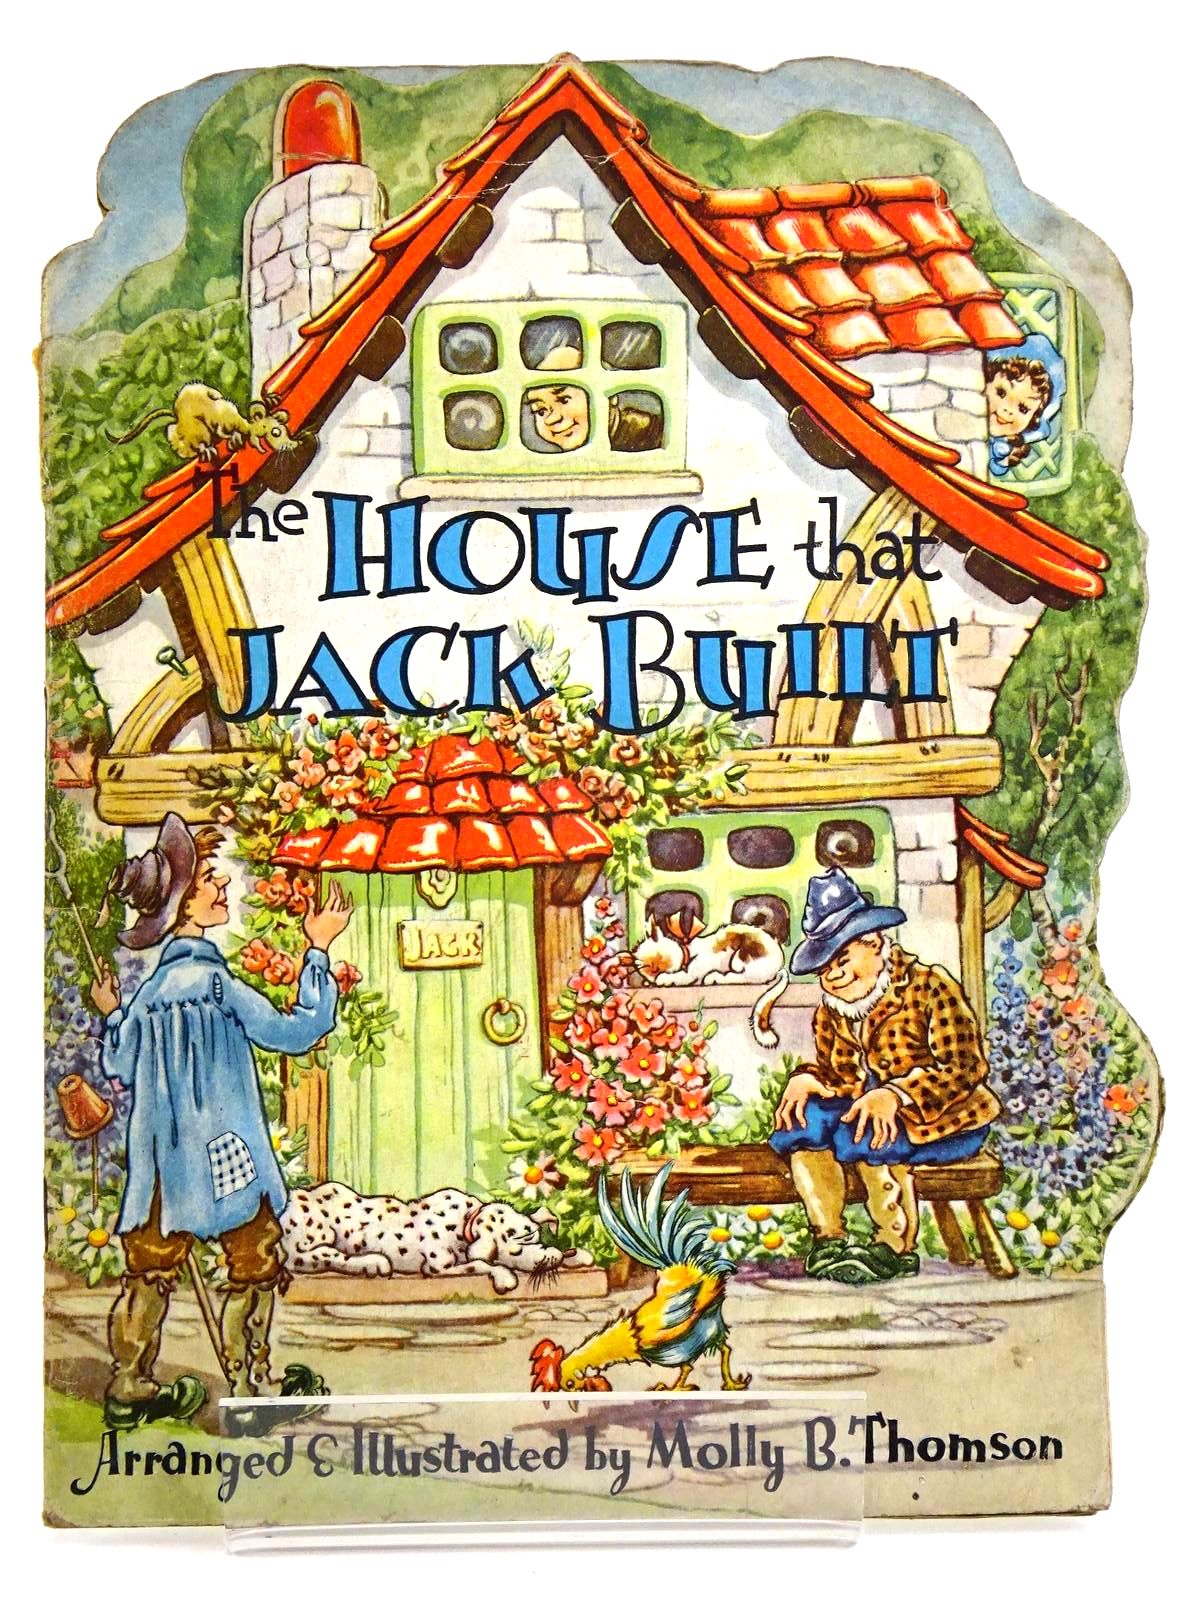 Photo of THE HOUSE THAT JACK BUILT written by Thomson, Molly B. illustrated by Thomson, Molly B. published by Collins Clear-Type Press (STOCK CODE: 1318259)  for sale by Stella & Rose's Books